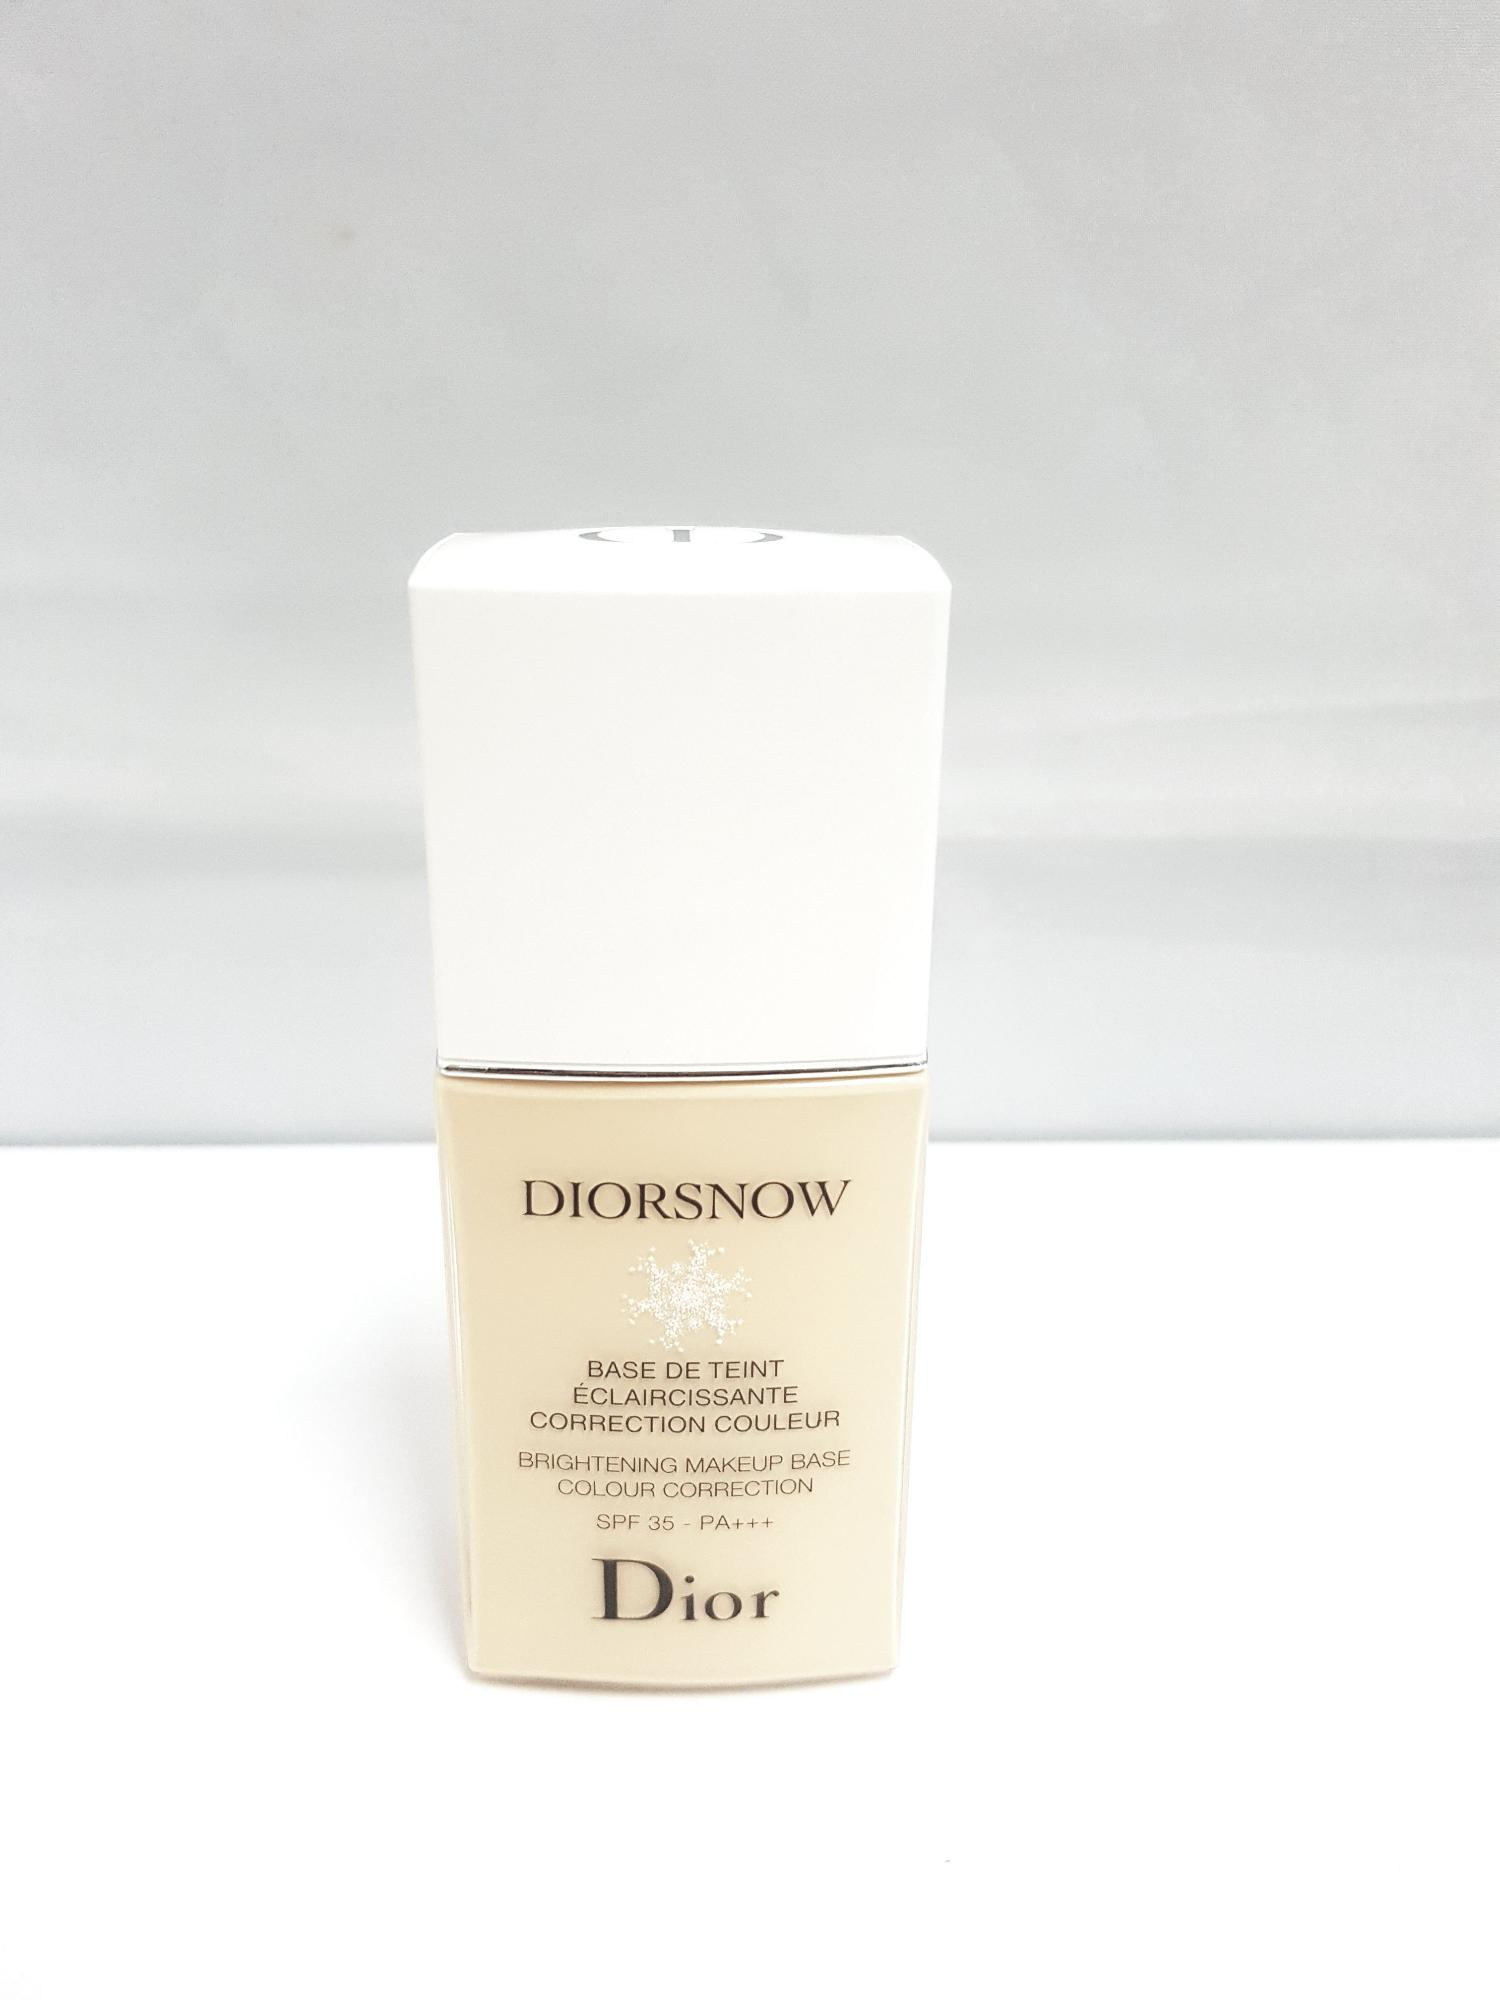 Diorsnow Base Teint Spf 35 Pa+++ Beige 30ml (tester Pack) Unused By Mybeautystory.